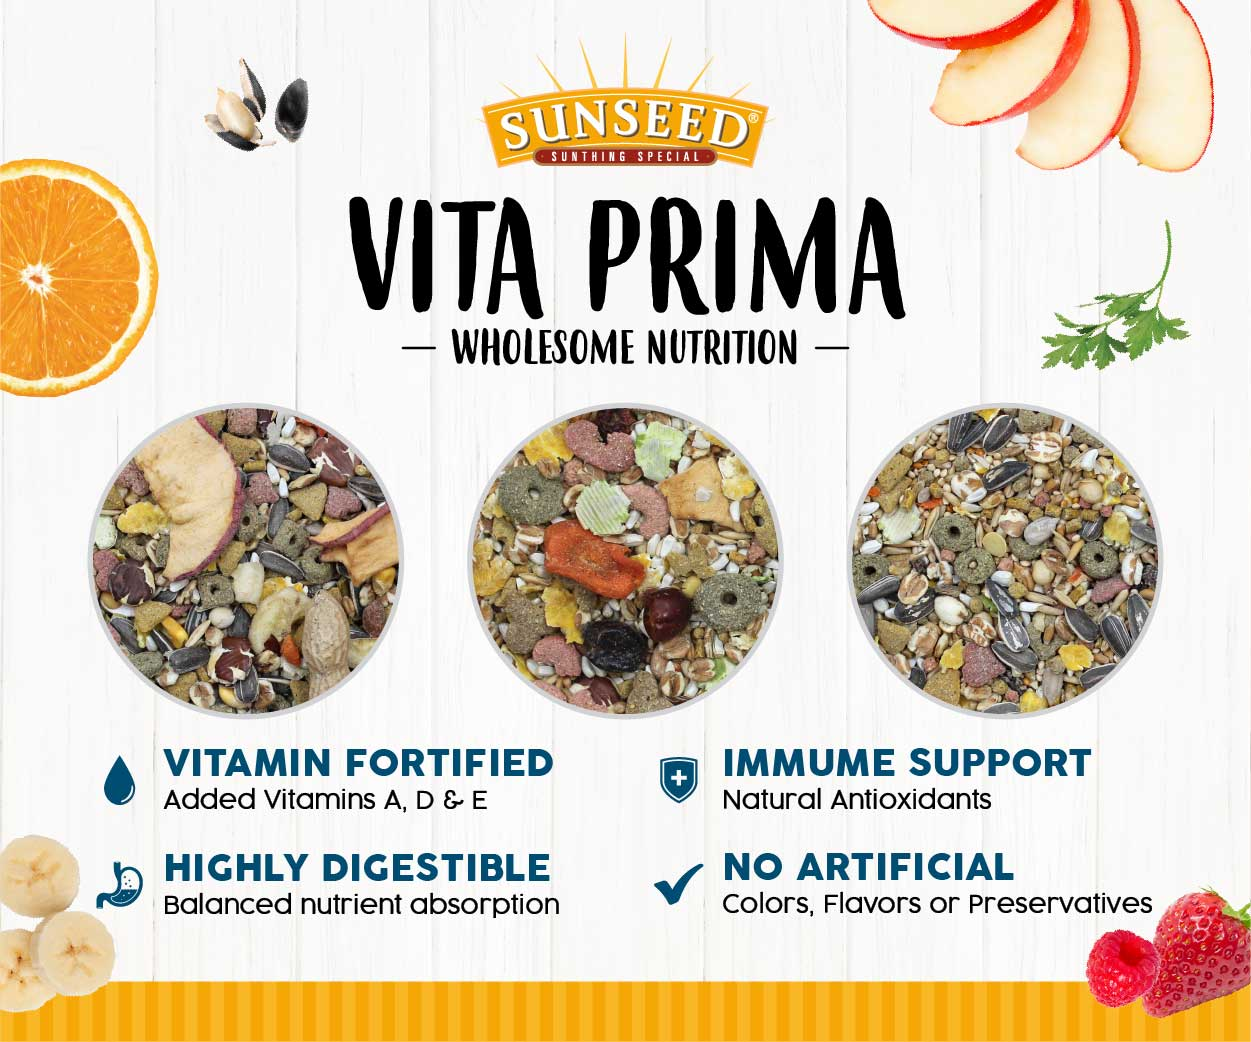 Vita Prima - Wholesome Nutrition